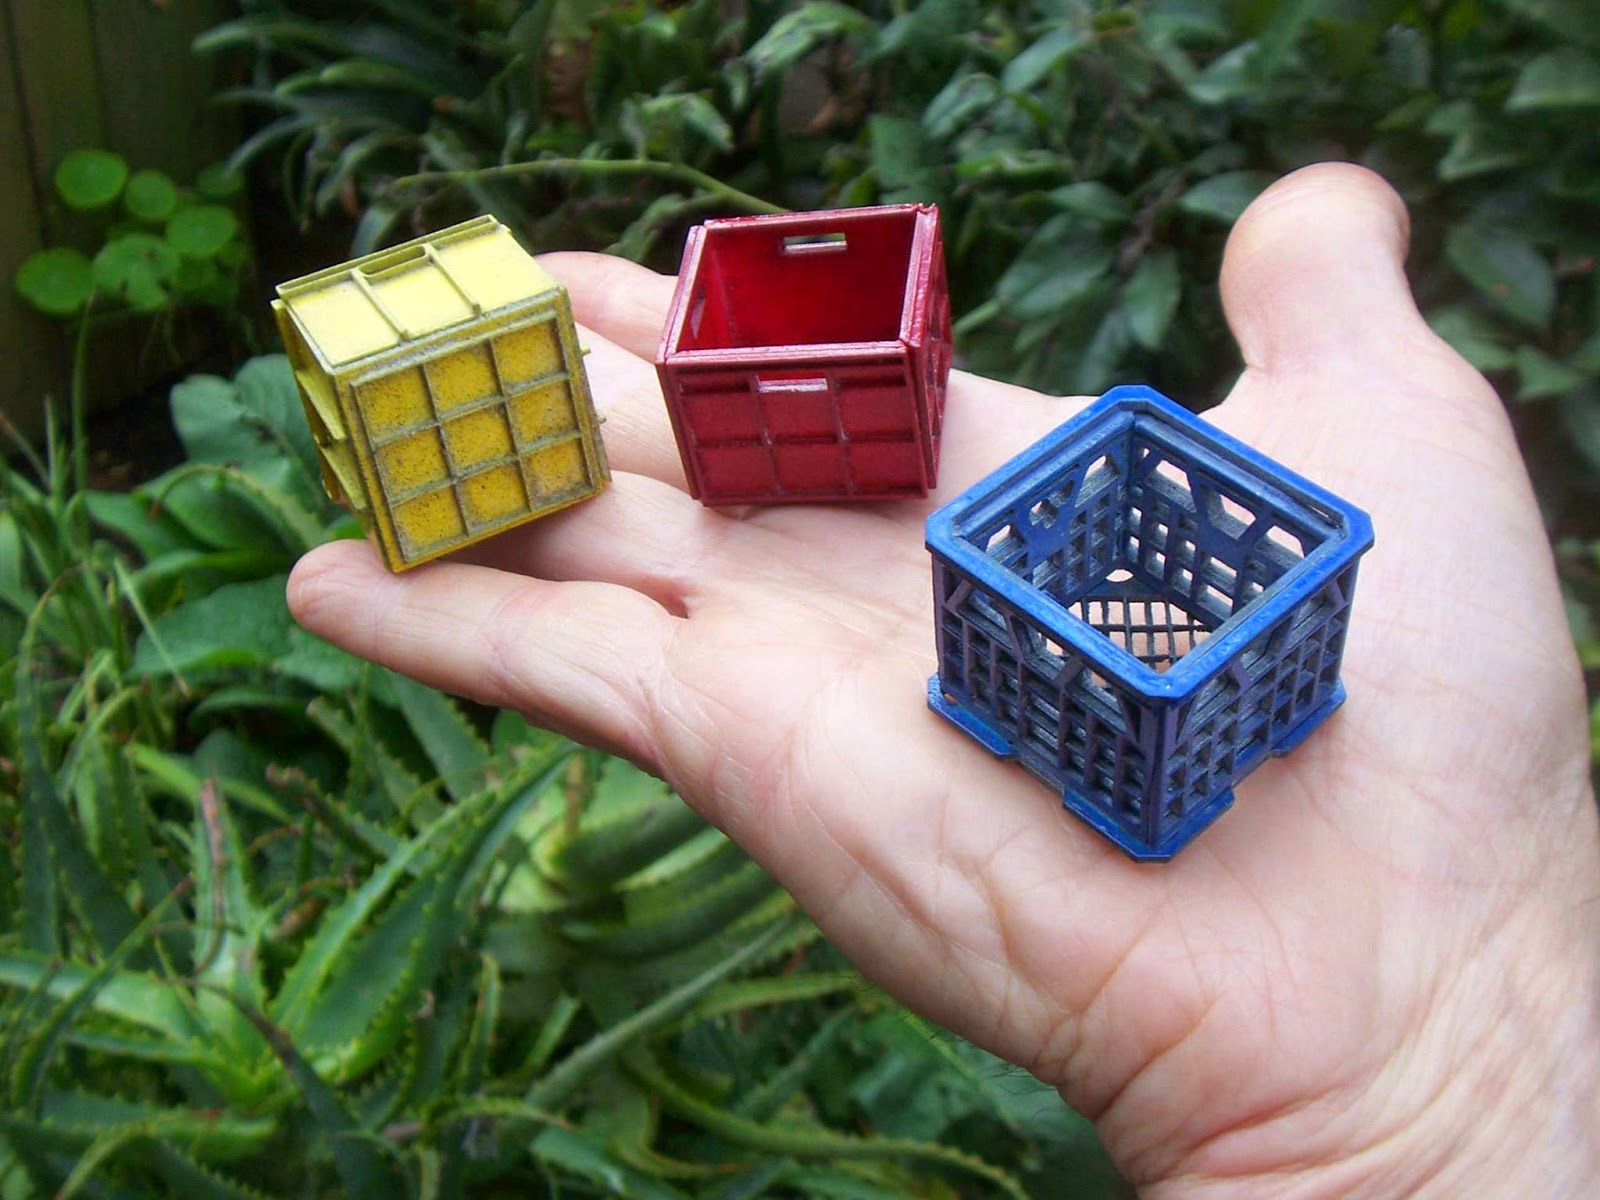 Three modern dolls' house miniature milk crates balanced on a hand.